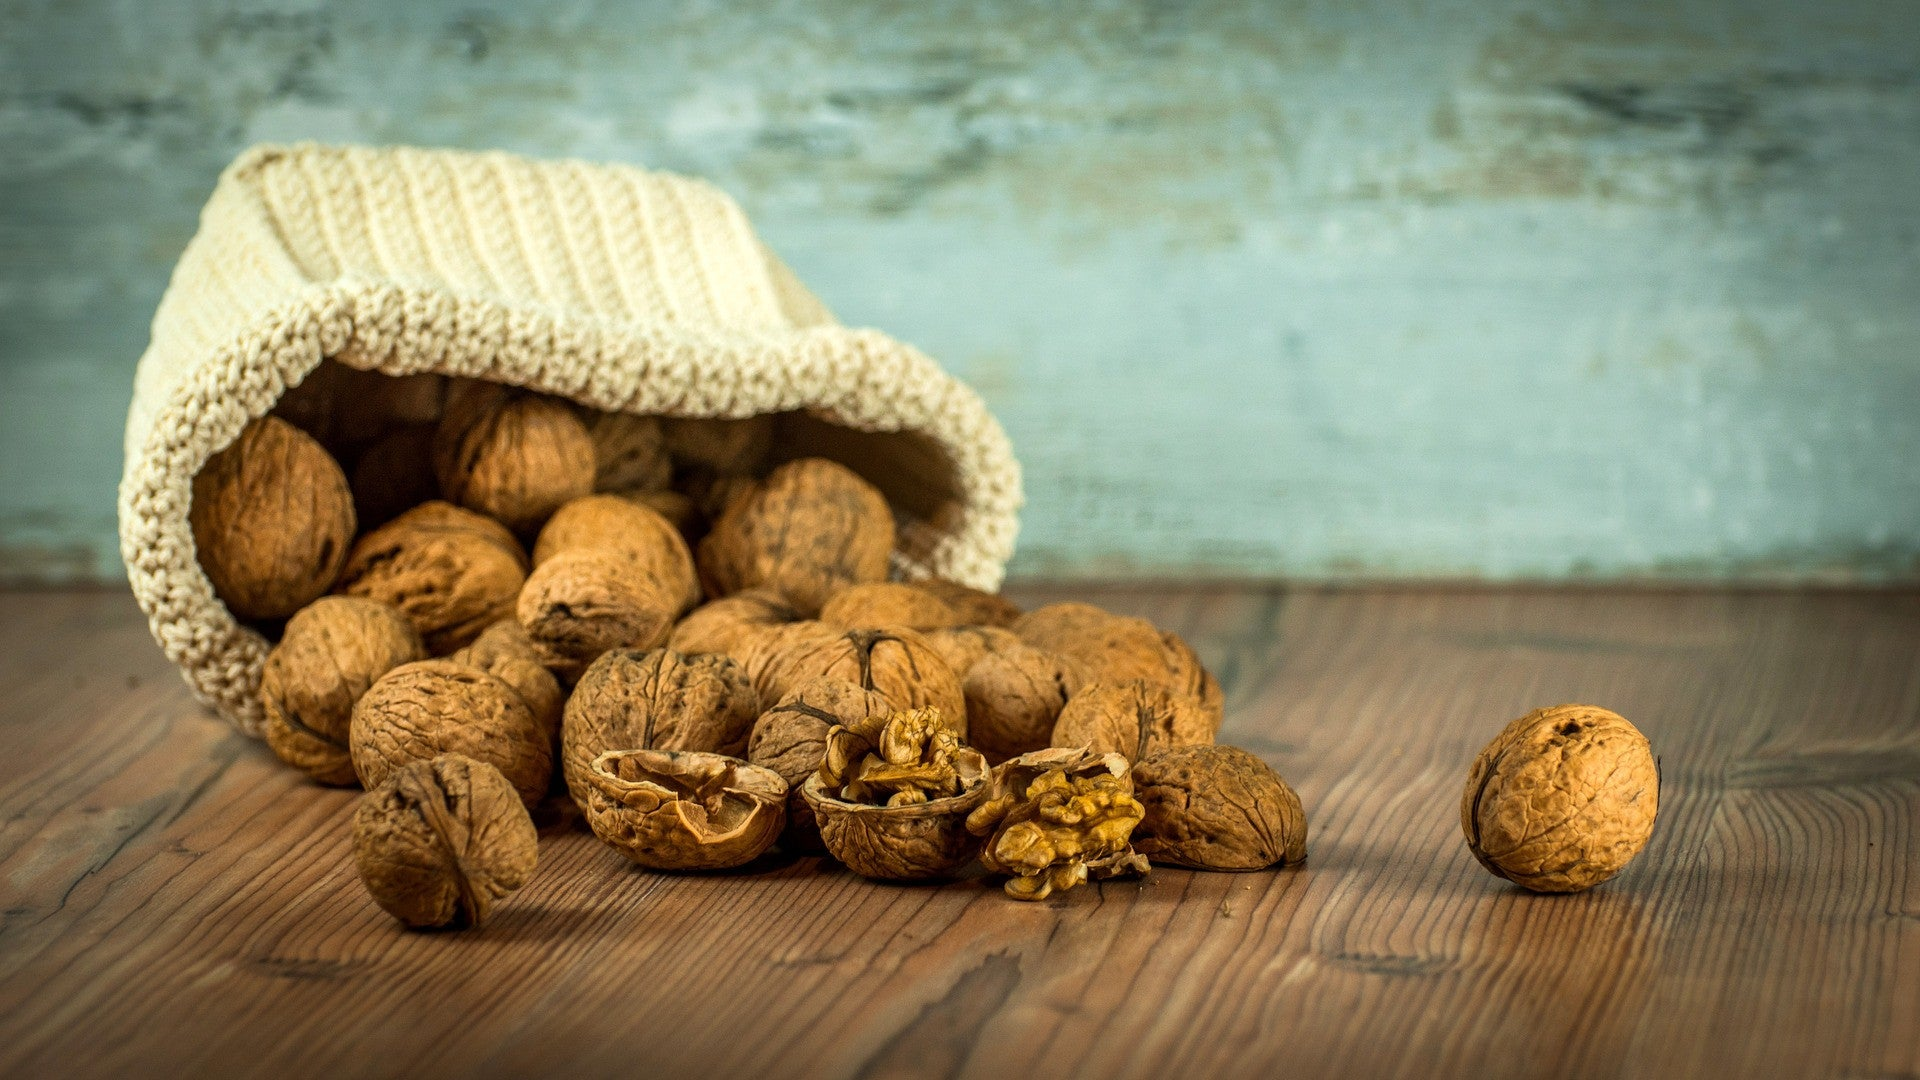 5 reasons why you should not eat nuts